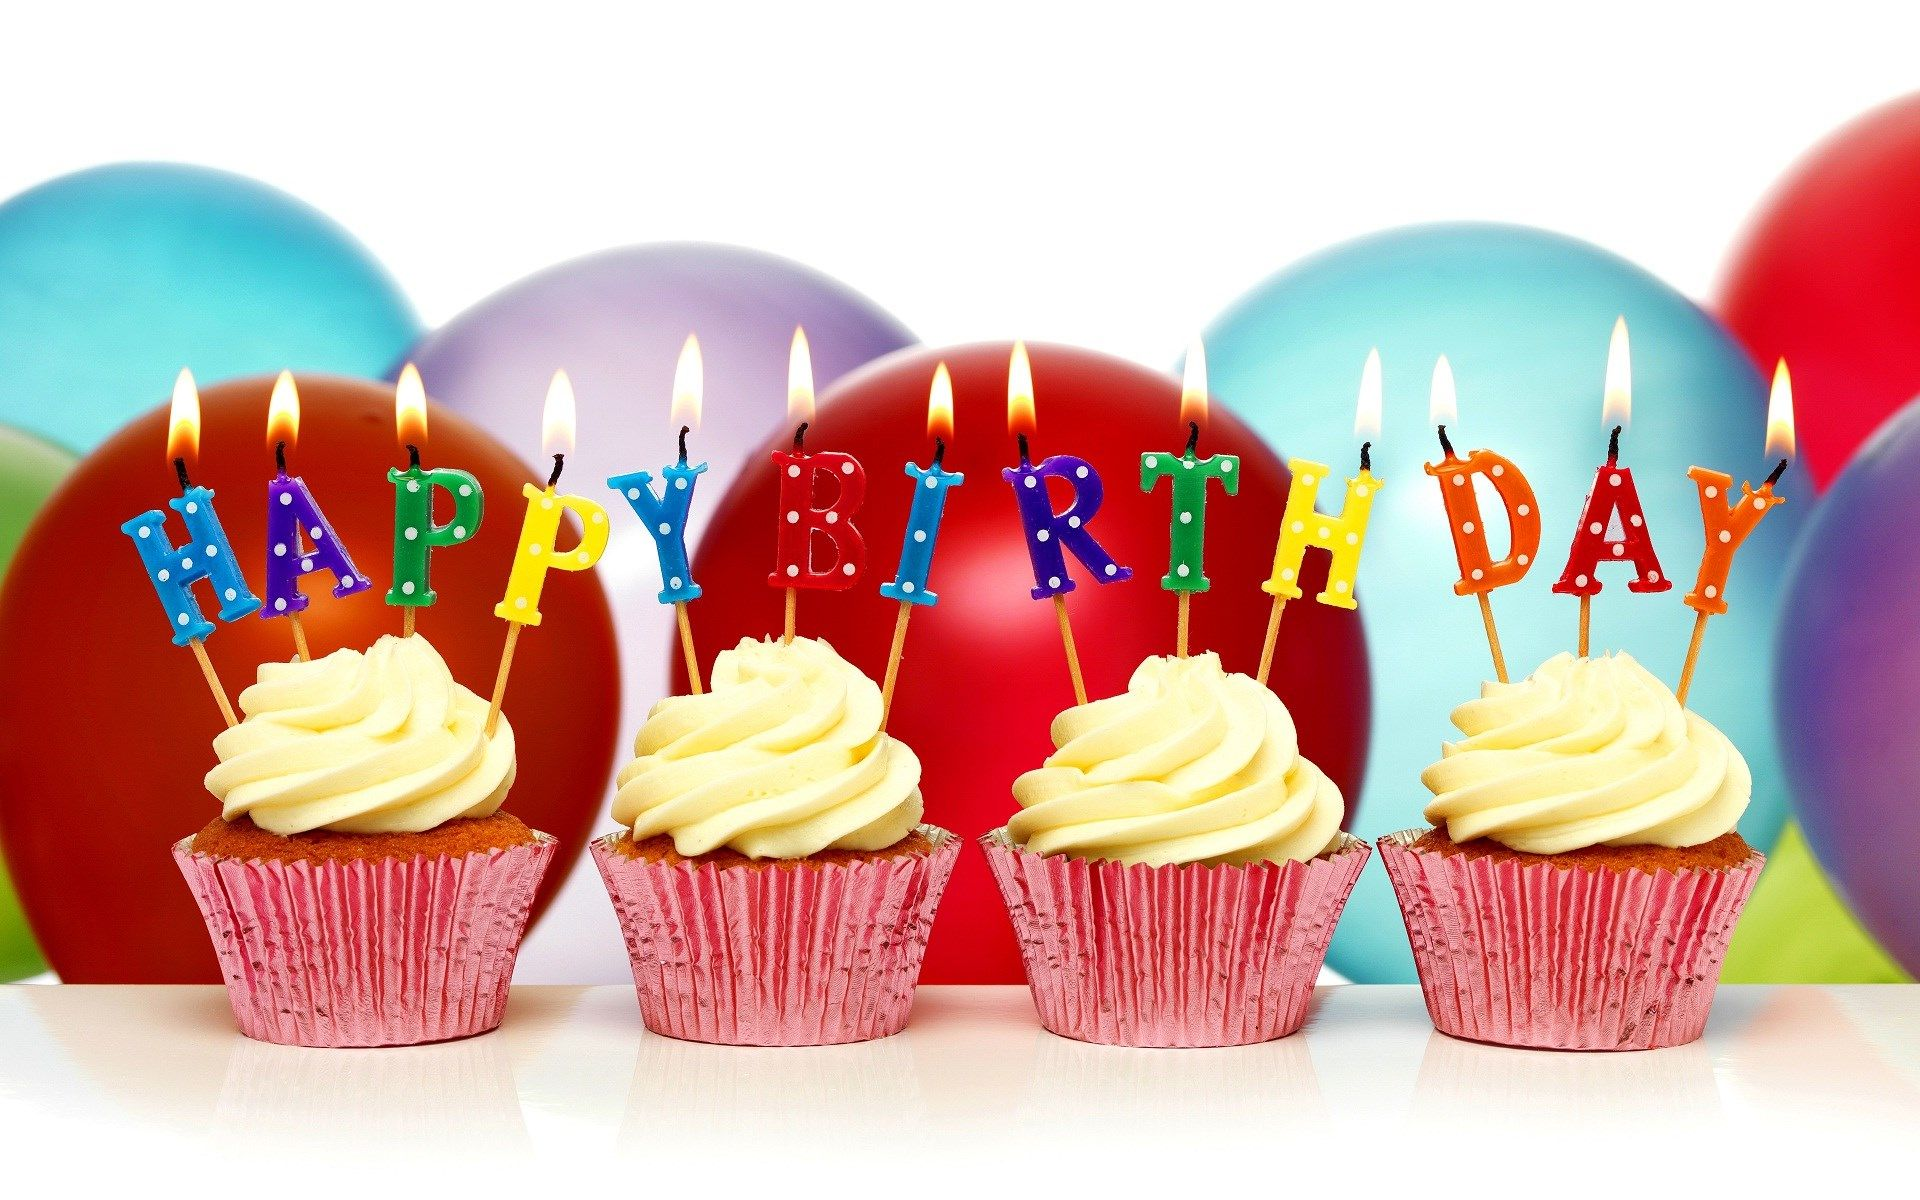 Happy birthday wallpapers and images ololoshka pinterest happy special happy birthday wishes to friend sms message greetings whatsapp video 2 m4hsunfo